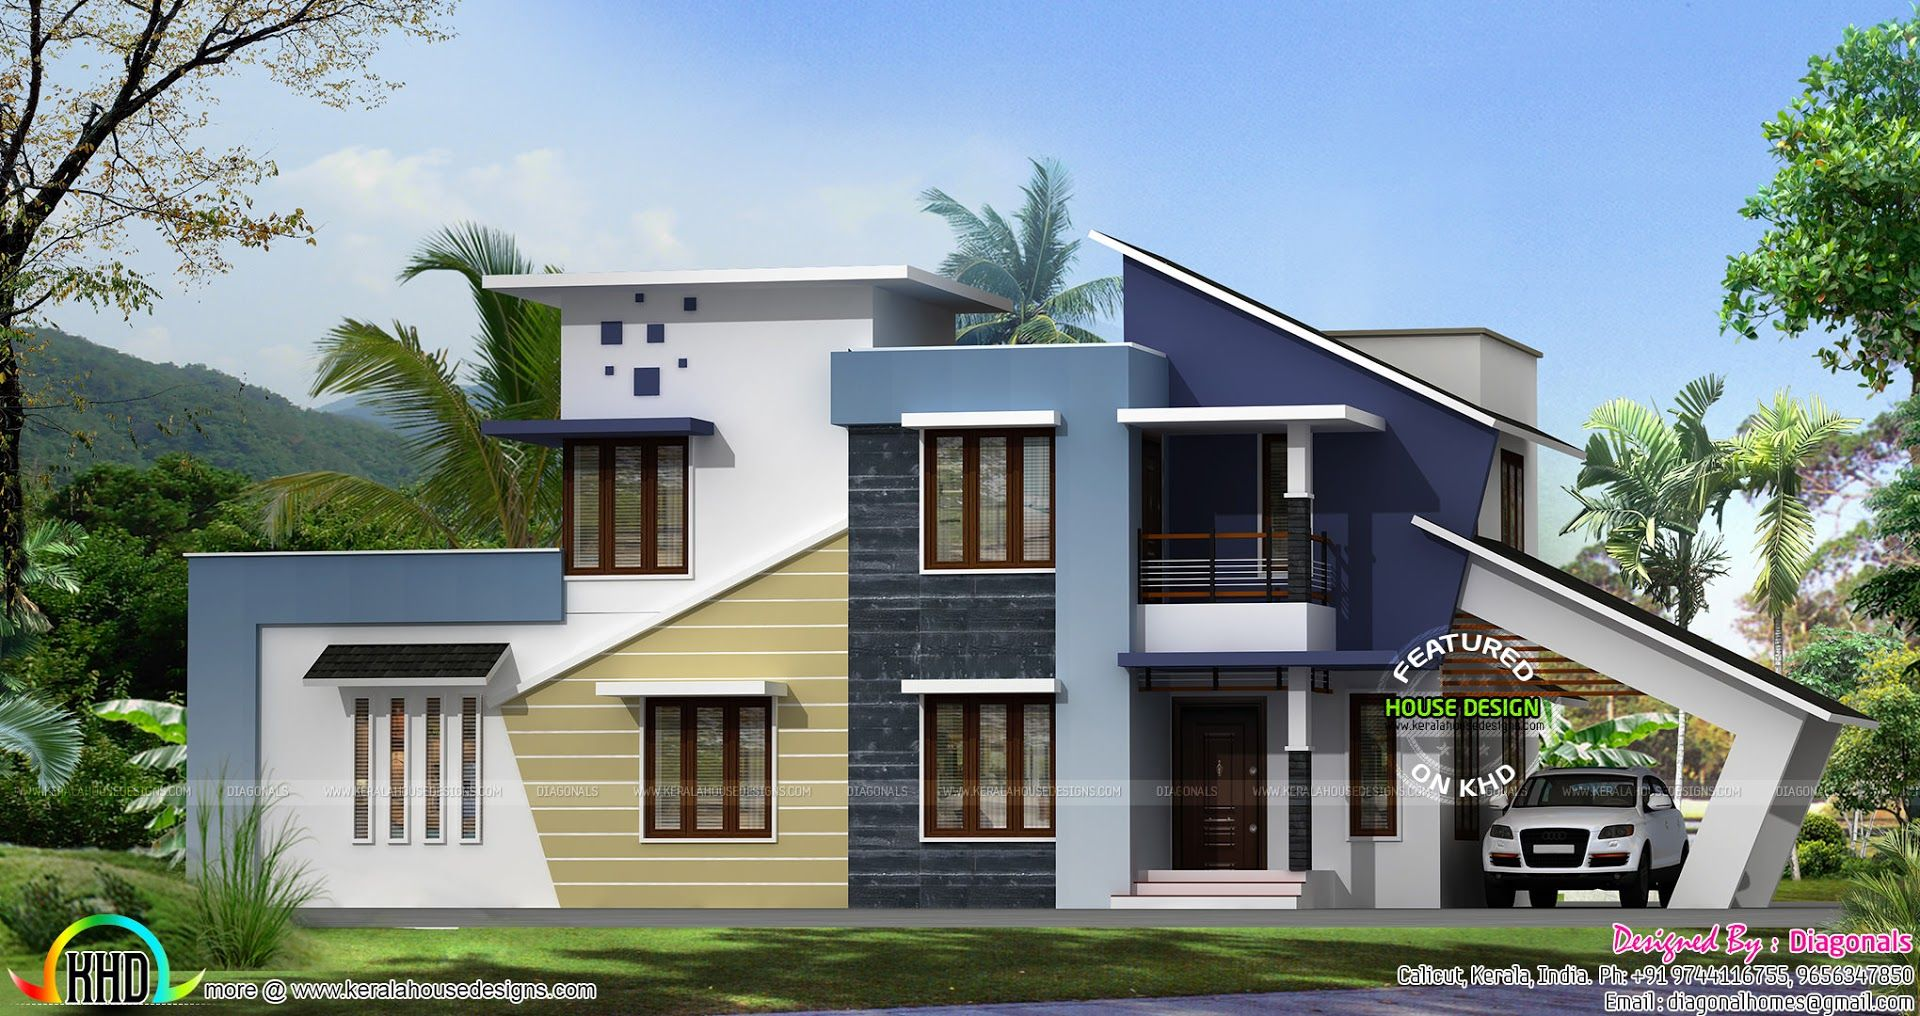 New Generation Home Design House Architecture Design Simple House Design Kerala House Design